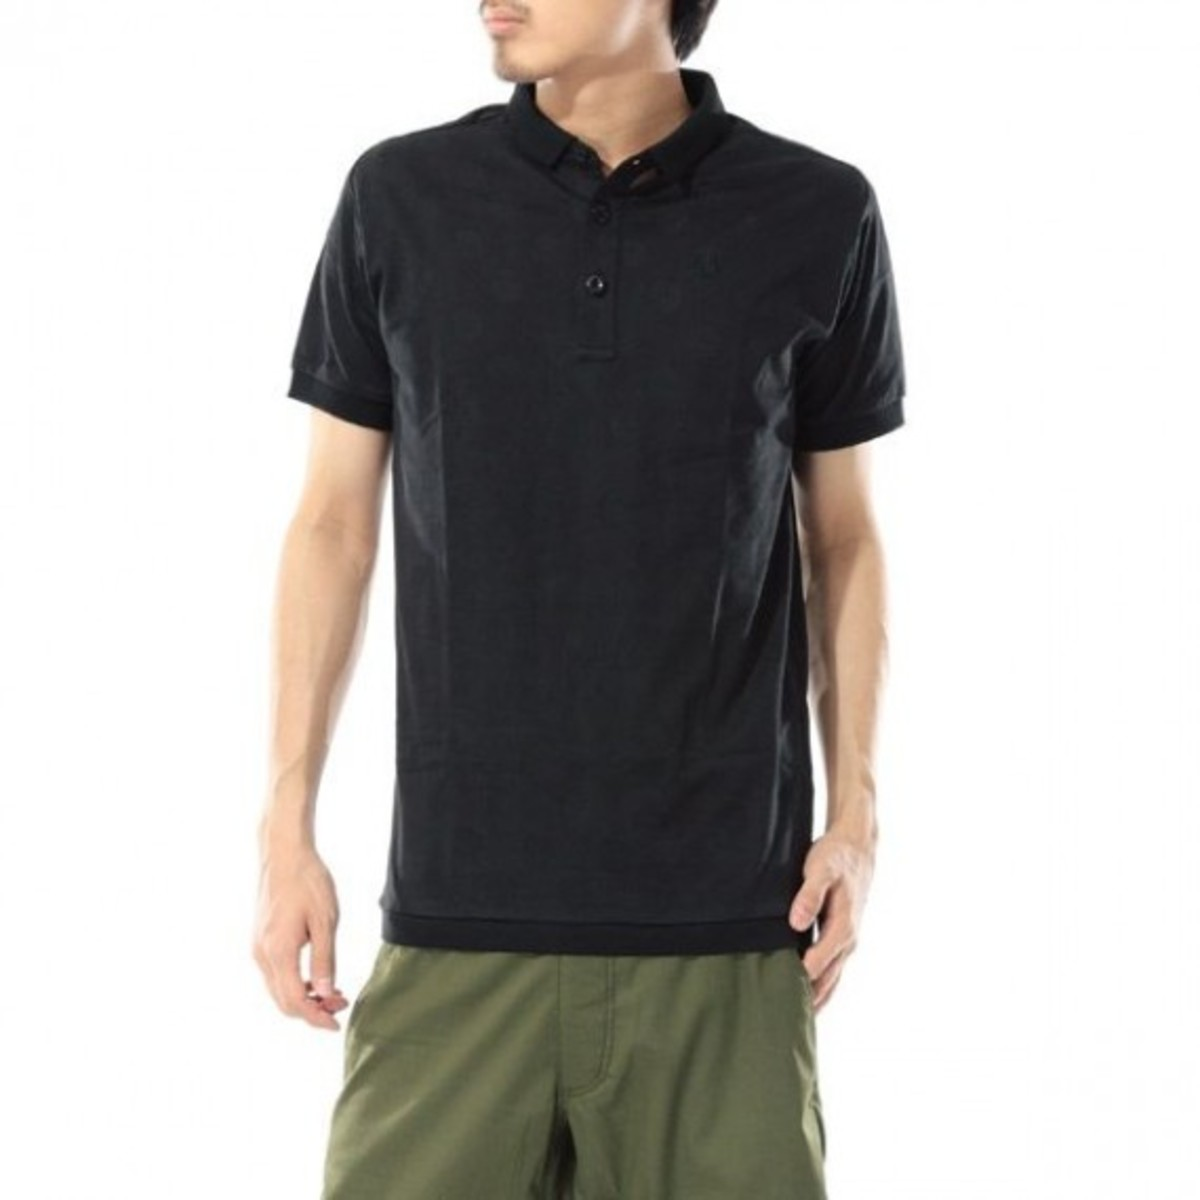 dot-polo-shirt-03